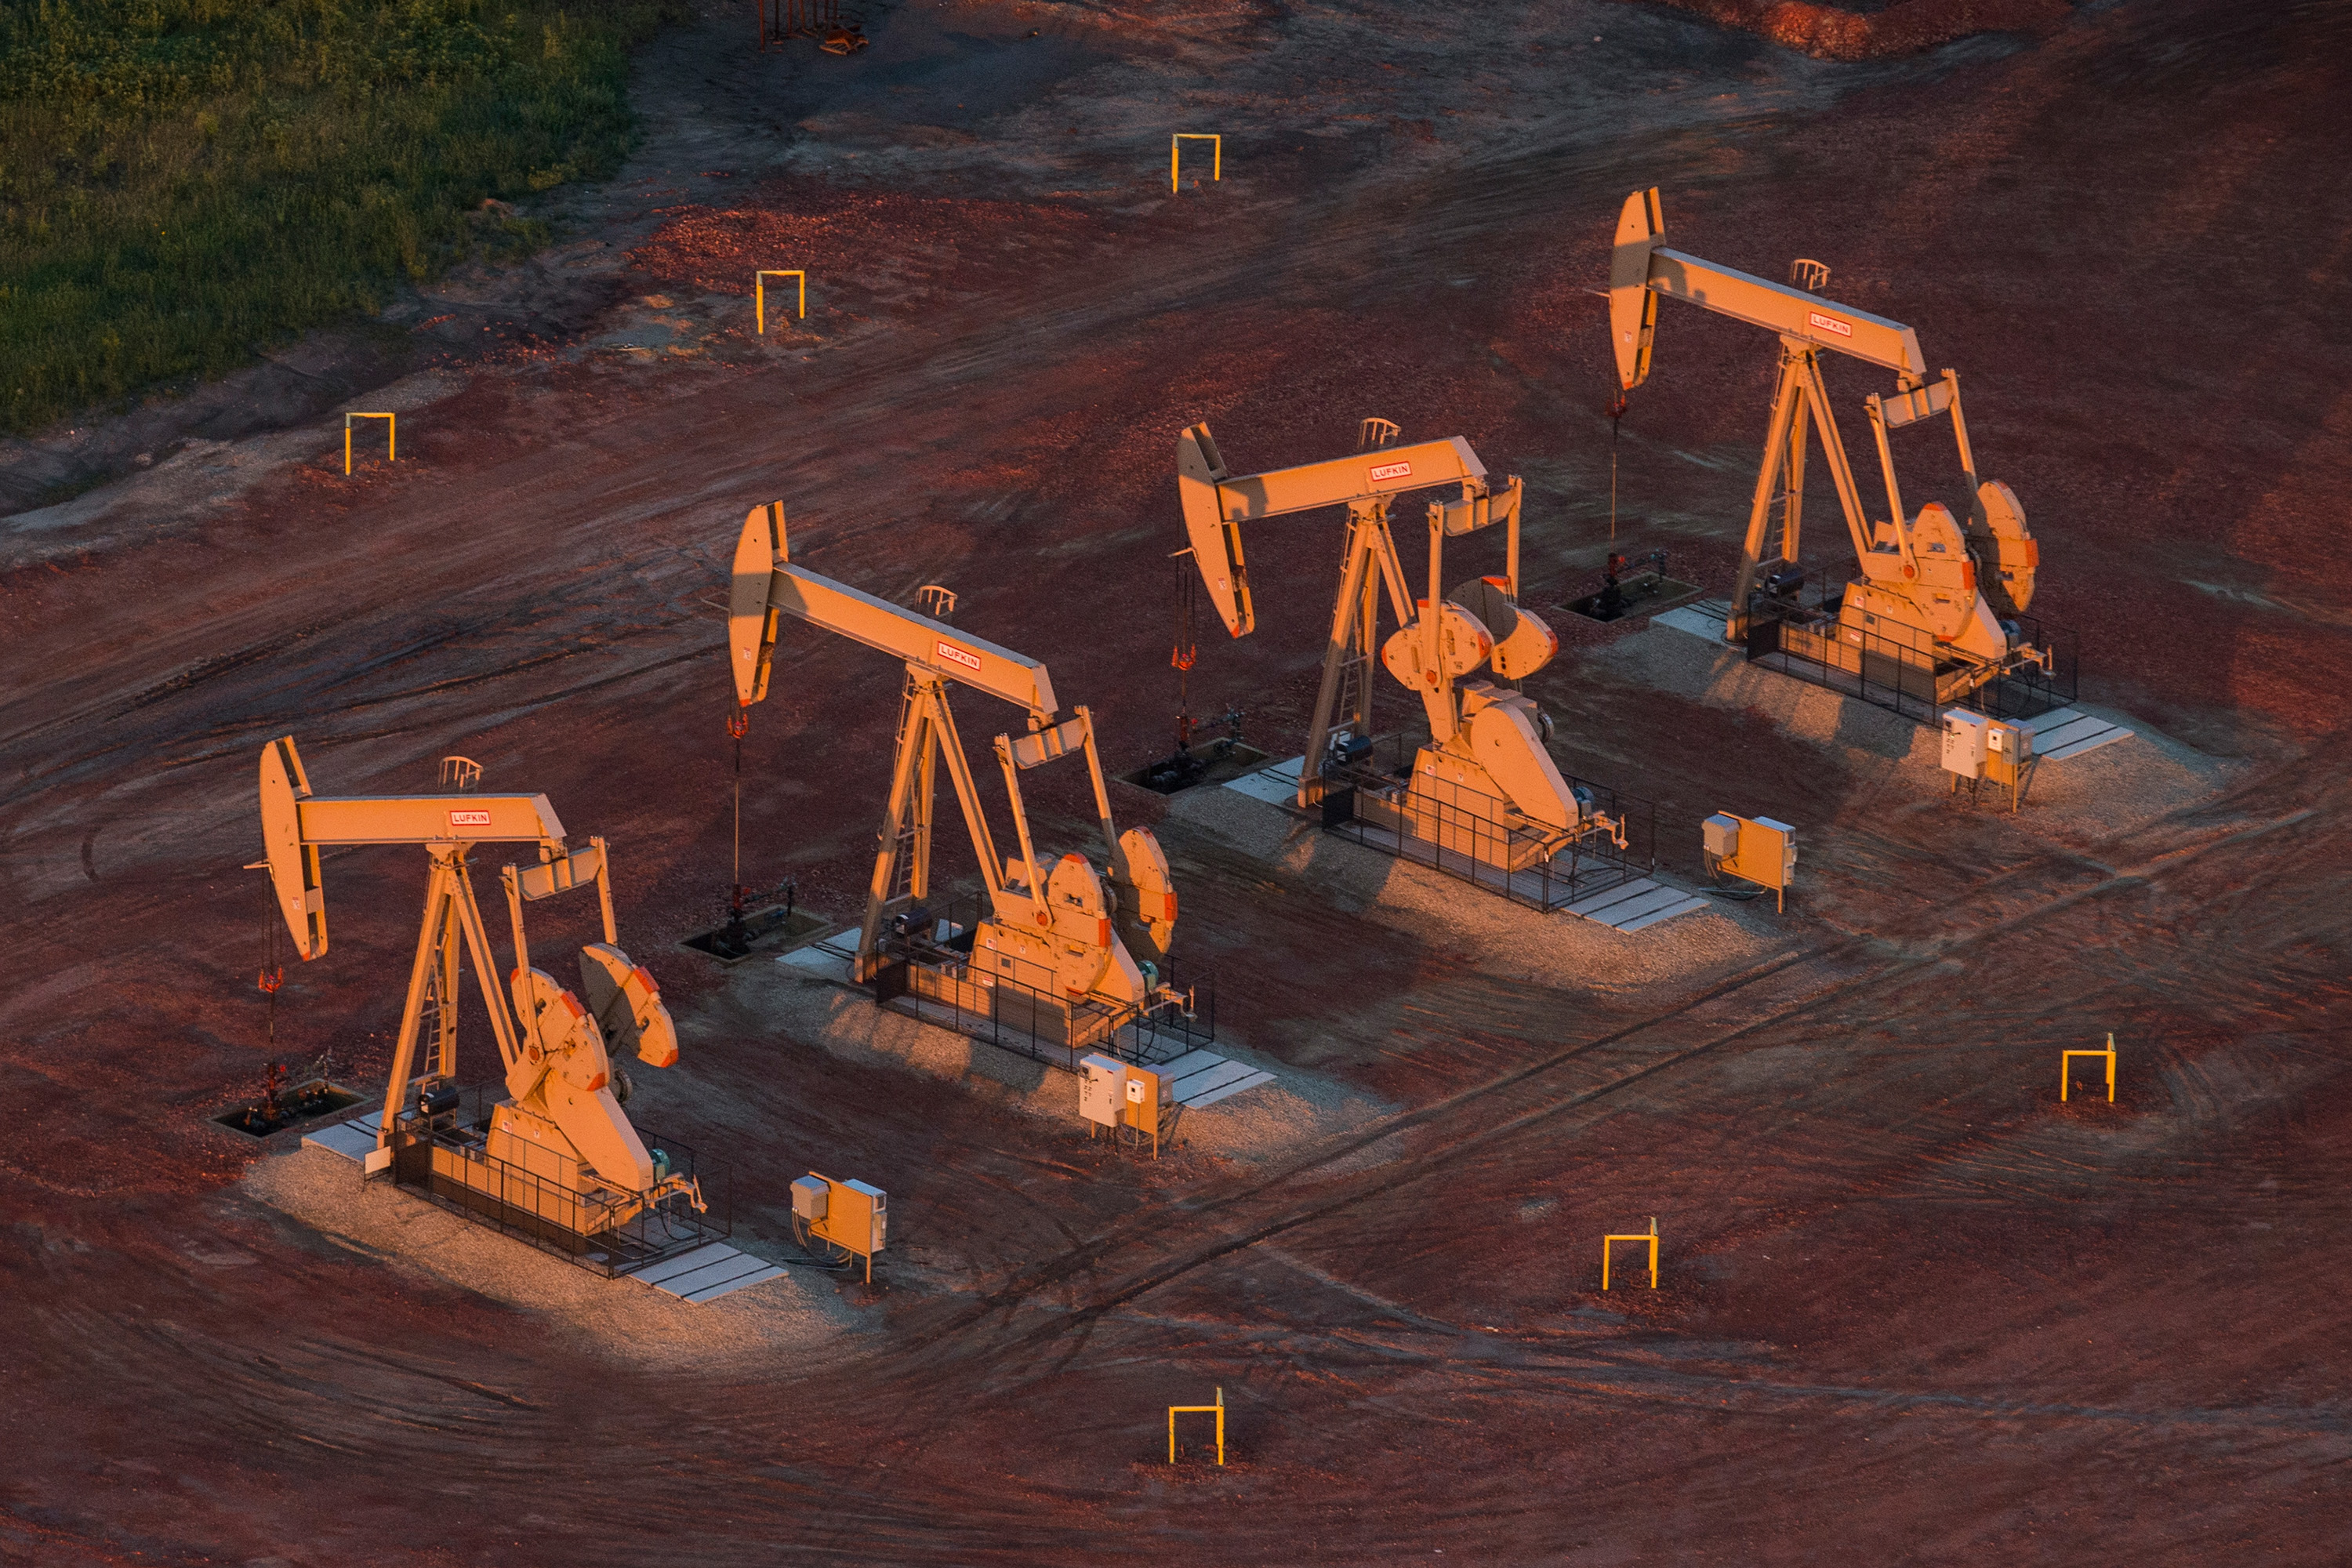 Federal court temporarily blocks Biden administration's oil and gas lease pause